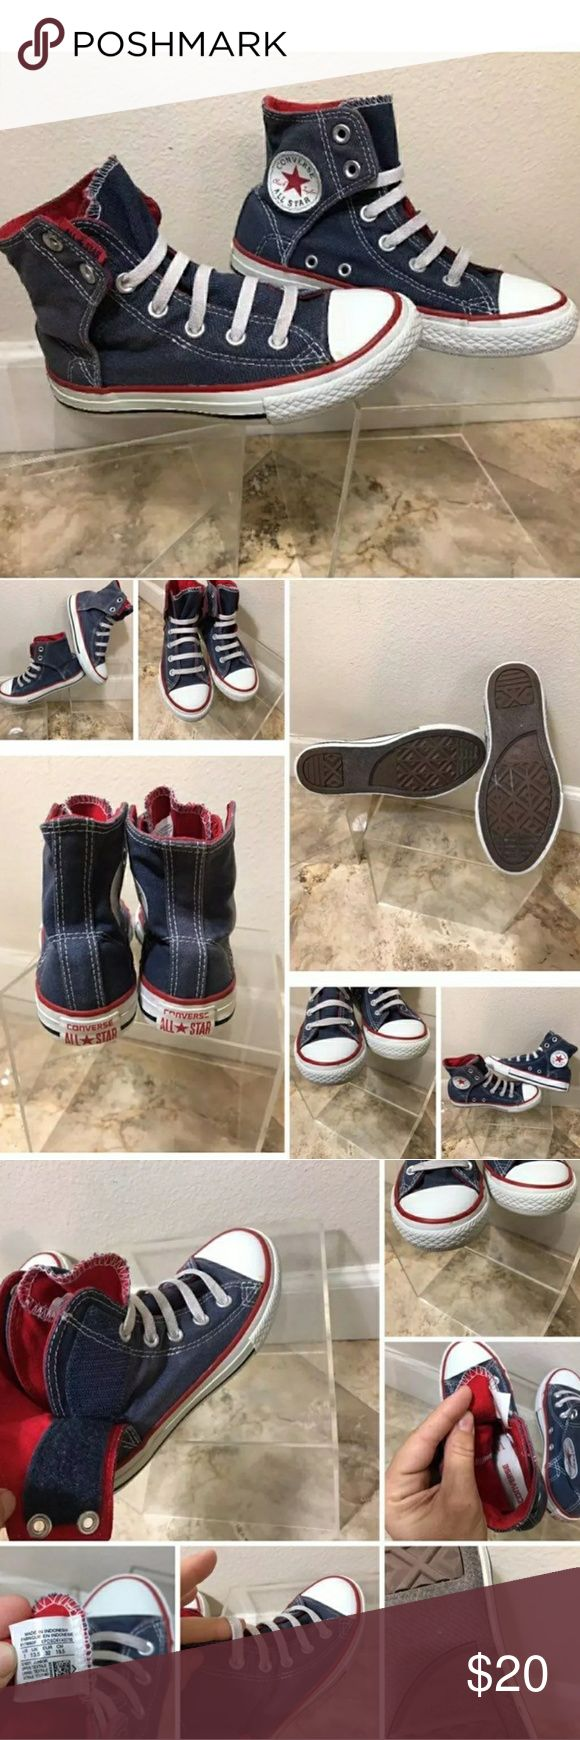 Converse Shoes PRICED TO SALE Like New size 2 kids converse high tops.  No tie easy to slip on with velcro sides.  Super cute! My son is autistic and has sensory disorder and did not like the shoes coming up that high.  My loss your gain. Offers Welcome! Converse Shoes Sneakers